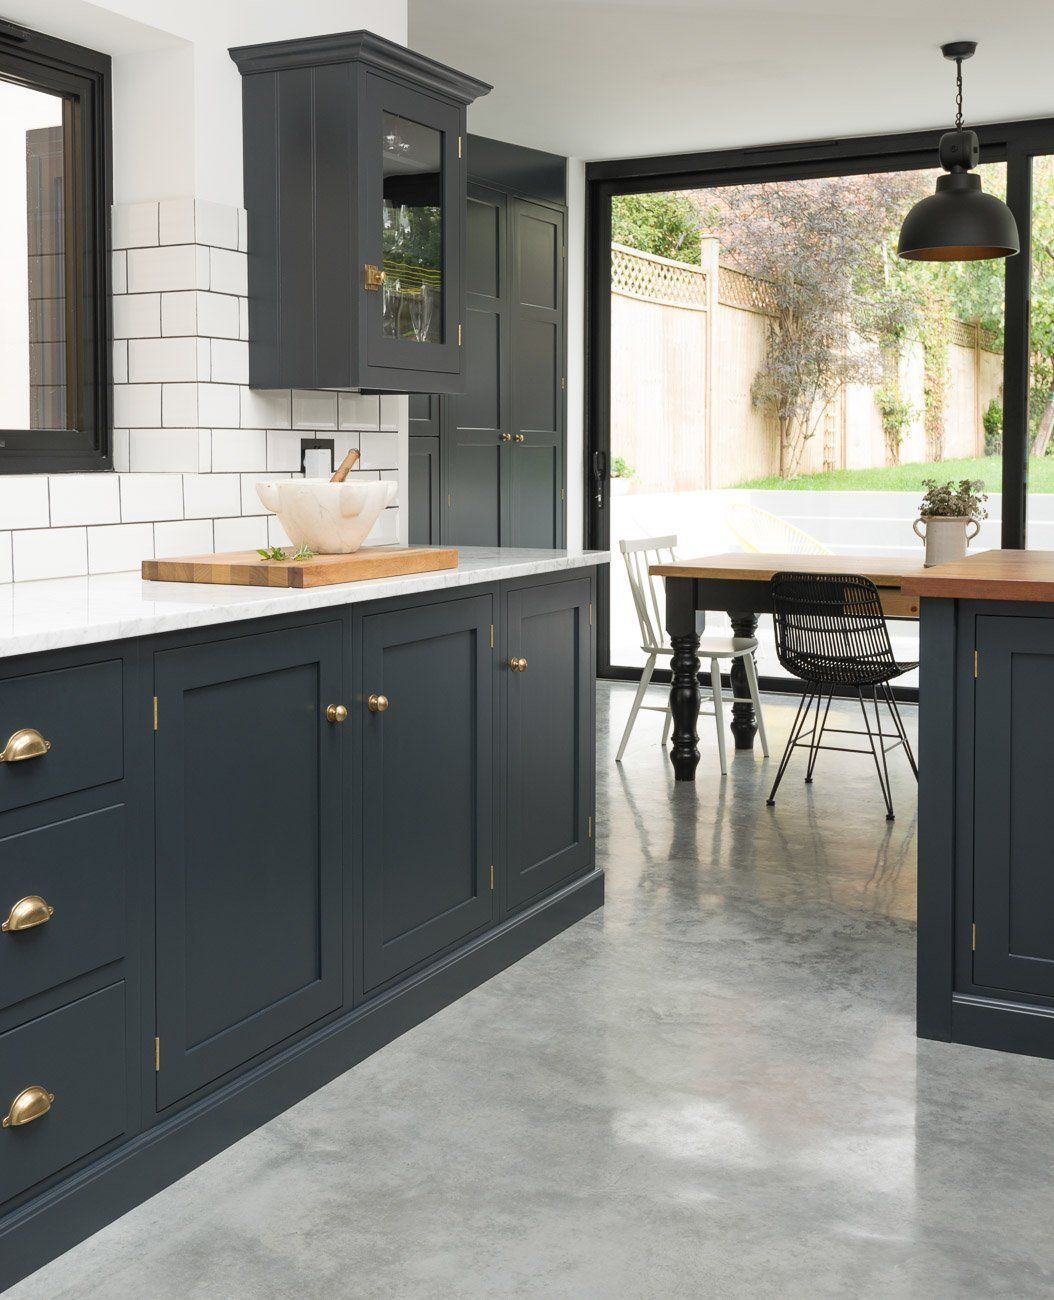 Kitchens Floor East Dulwich Kitchen Devol Kitchens Home Kitchen Pinterest